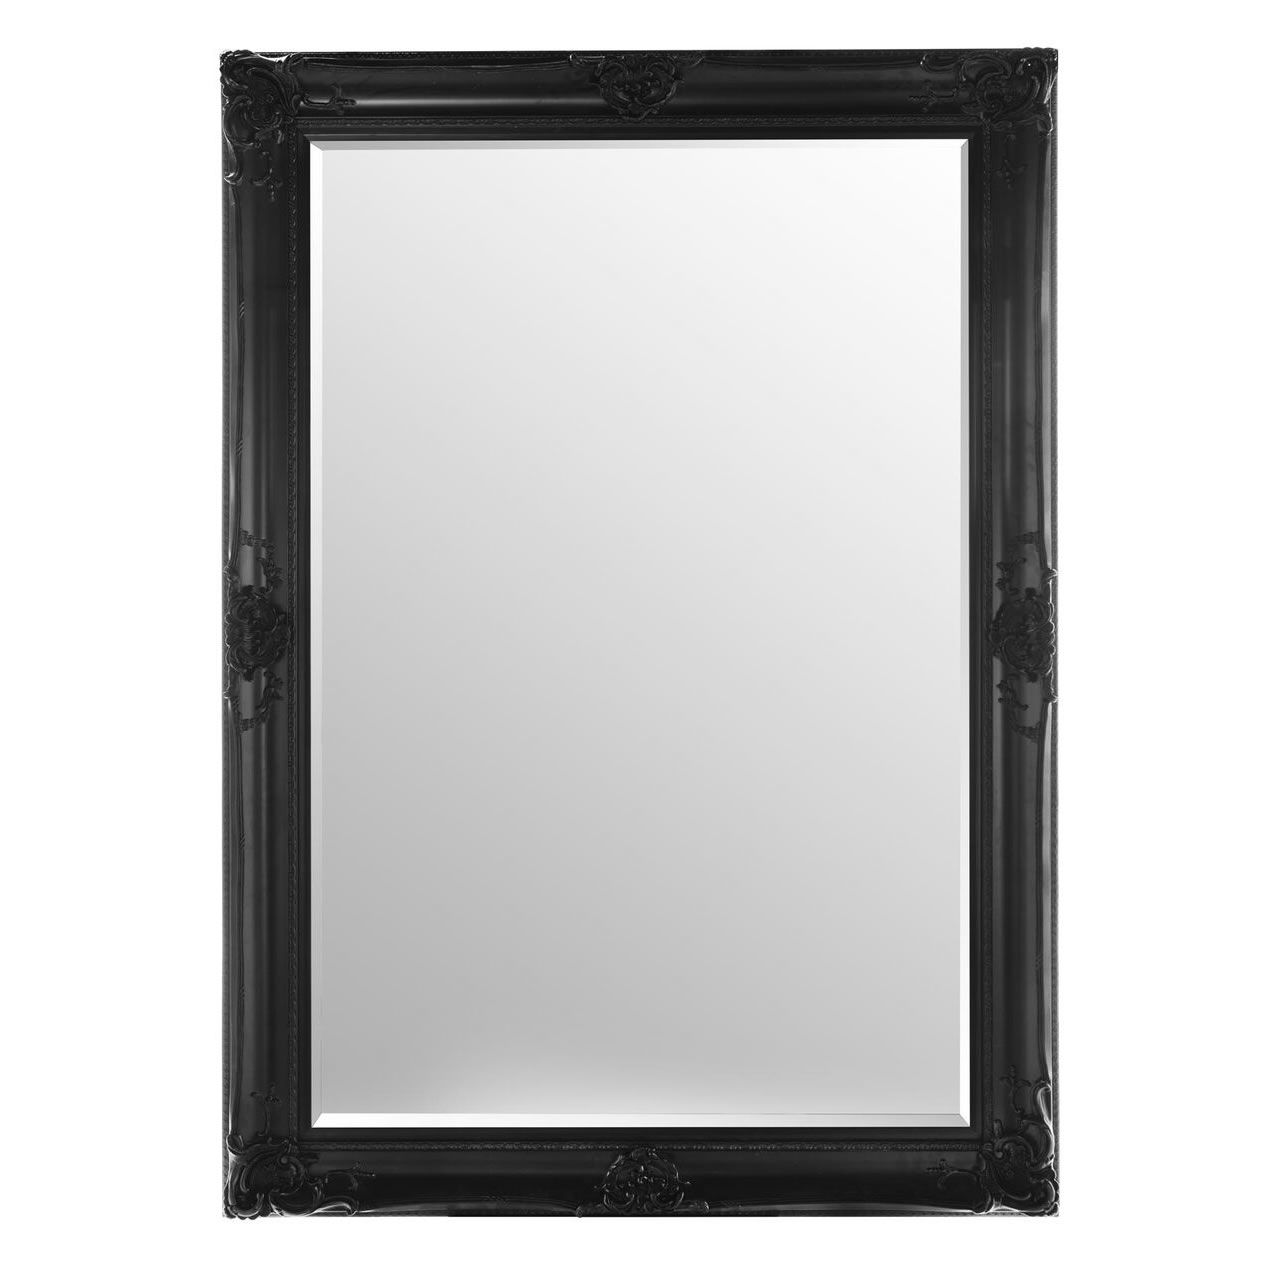 15 Collection Of Large Black Ornate Mirror Mirror Ideas